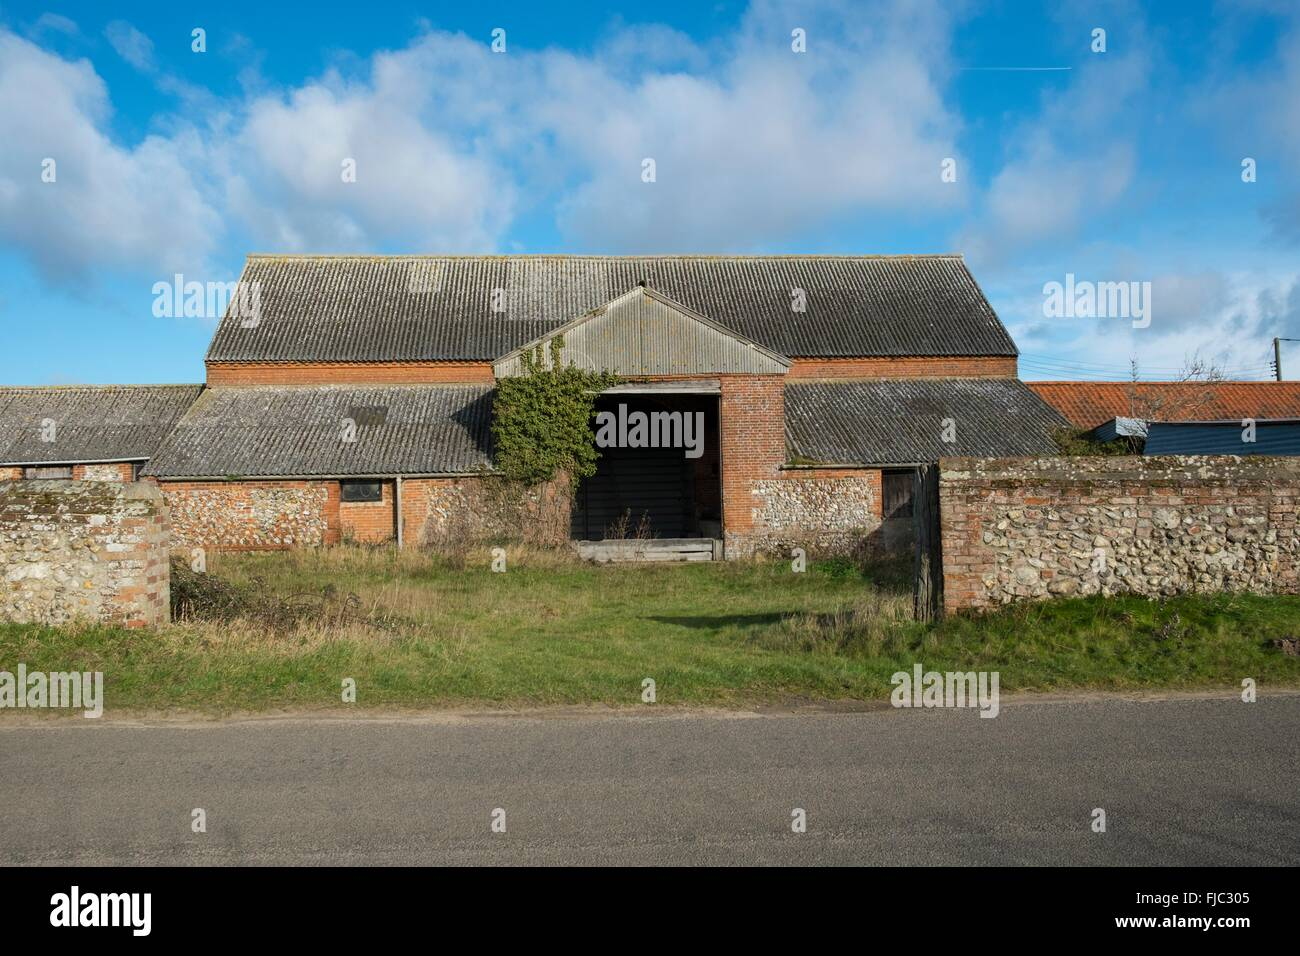 Derelict Flint and red brick  built barn. Agricultural building asbestos roof - Stock Image